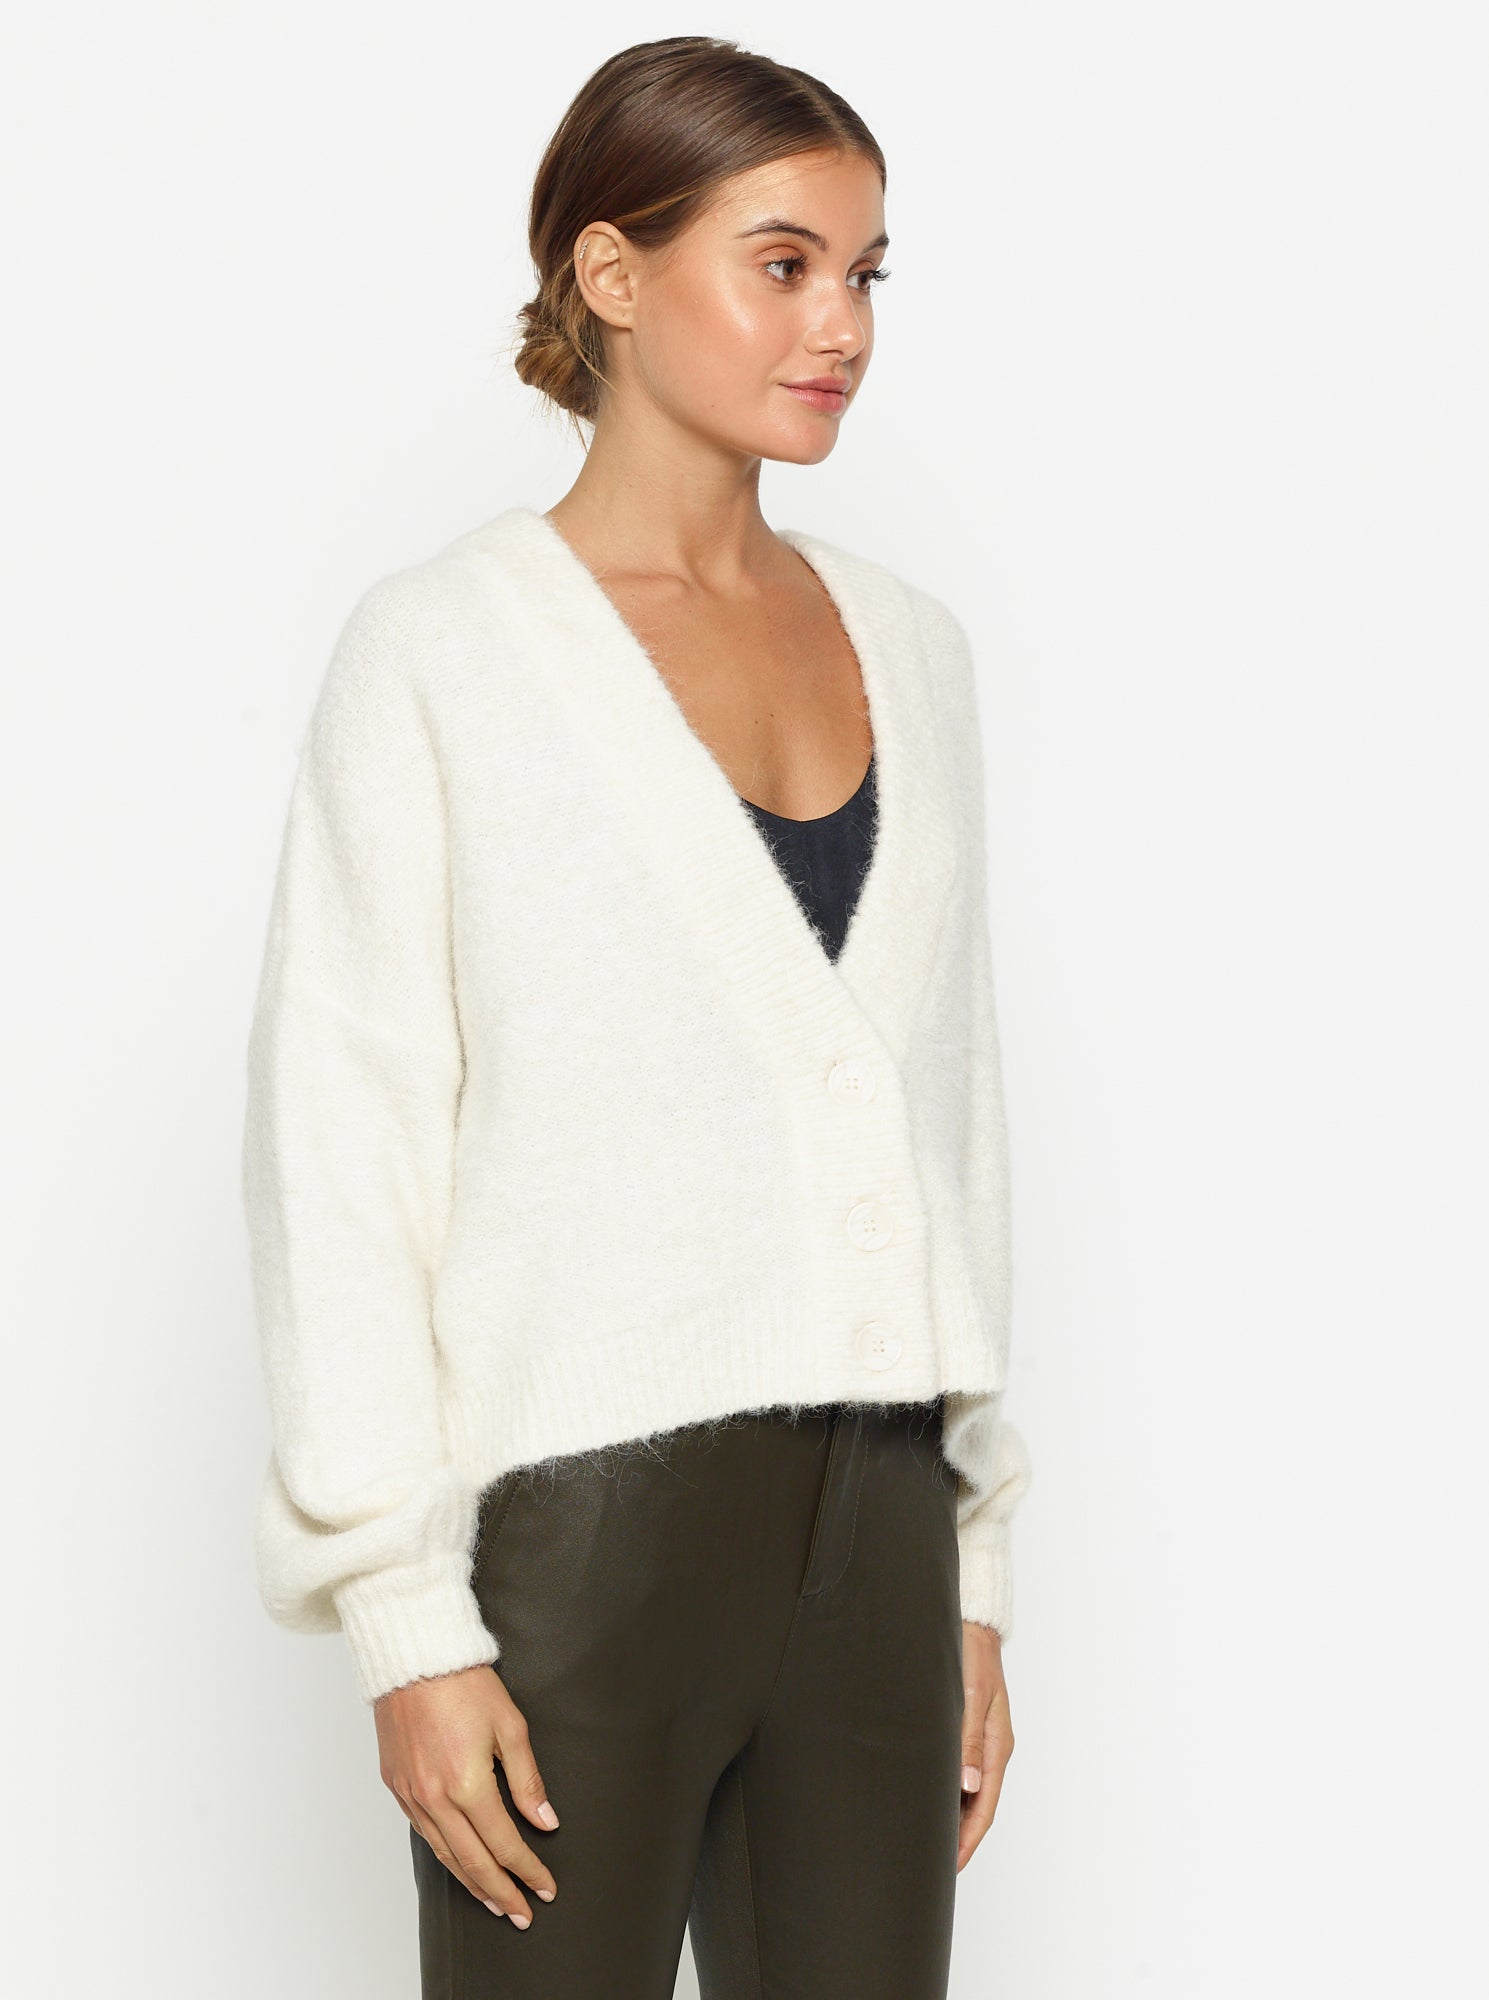 Off Duty Balloon Sleeve Cardigan - Ivory